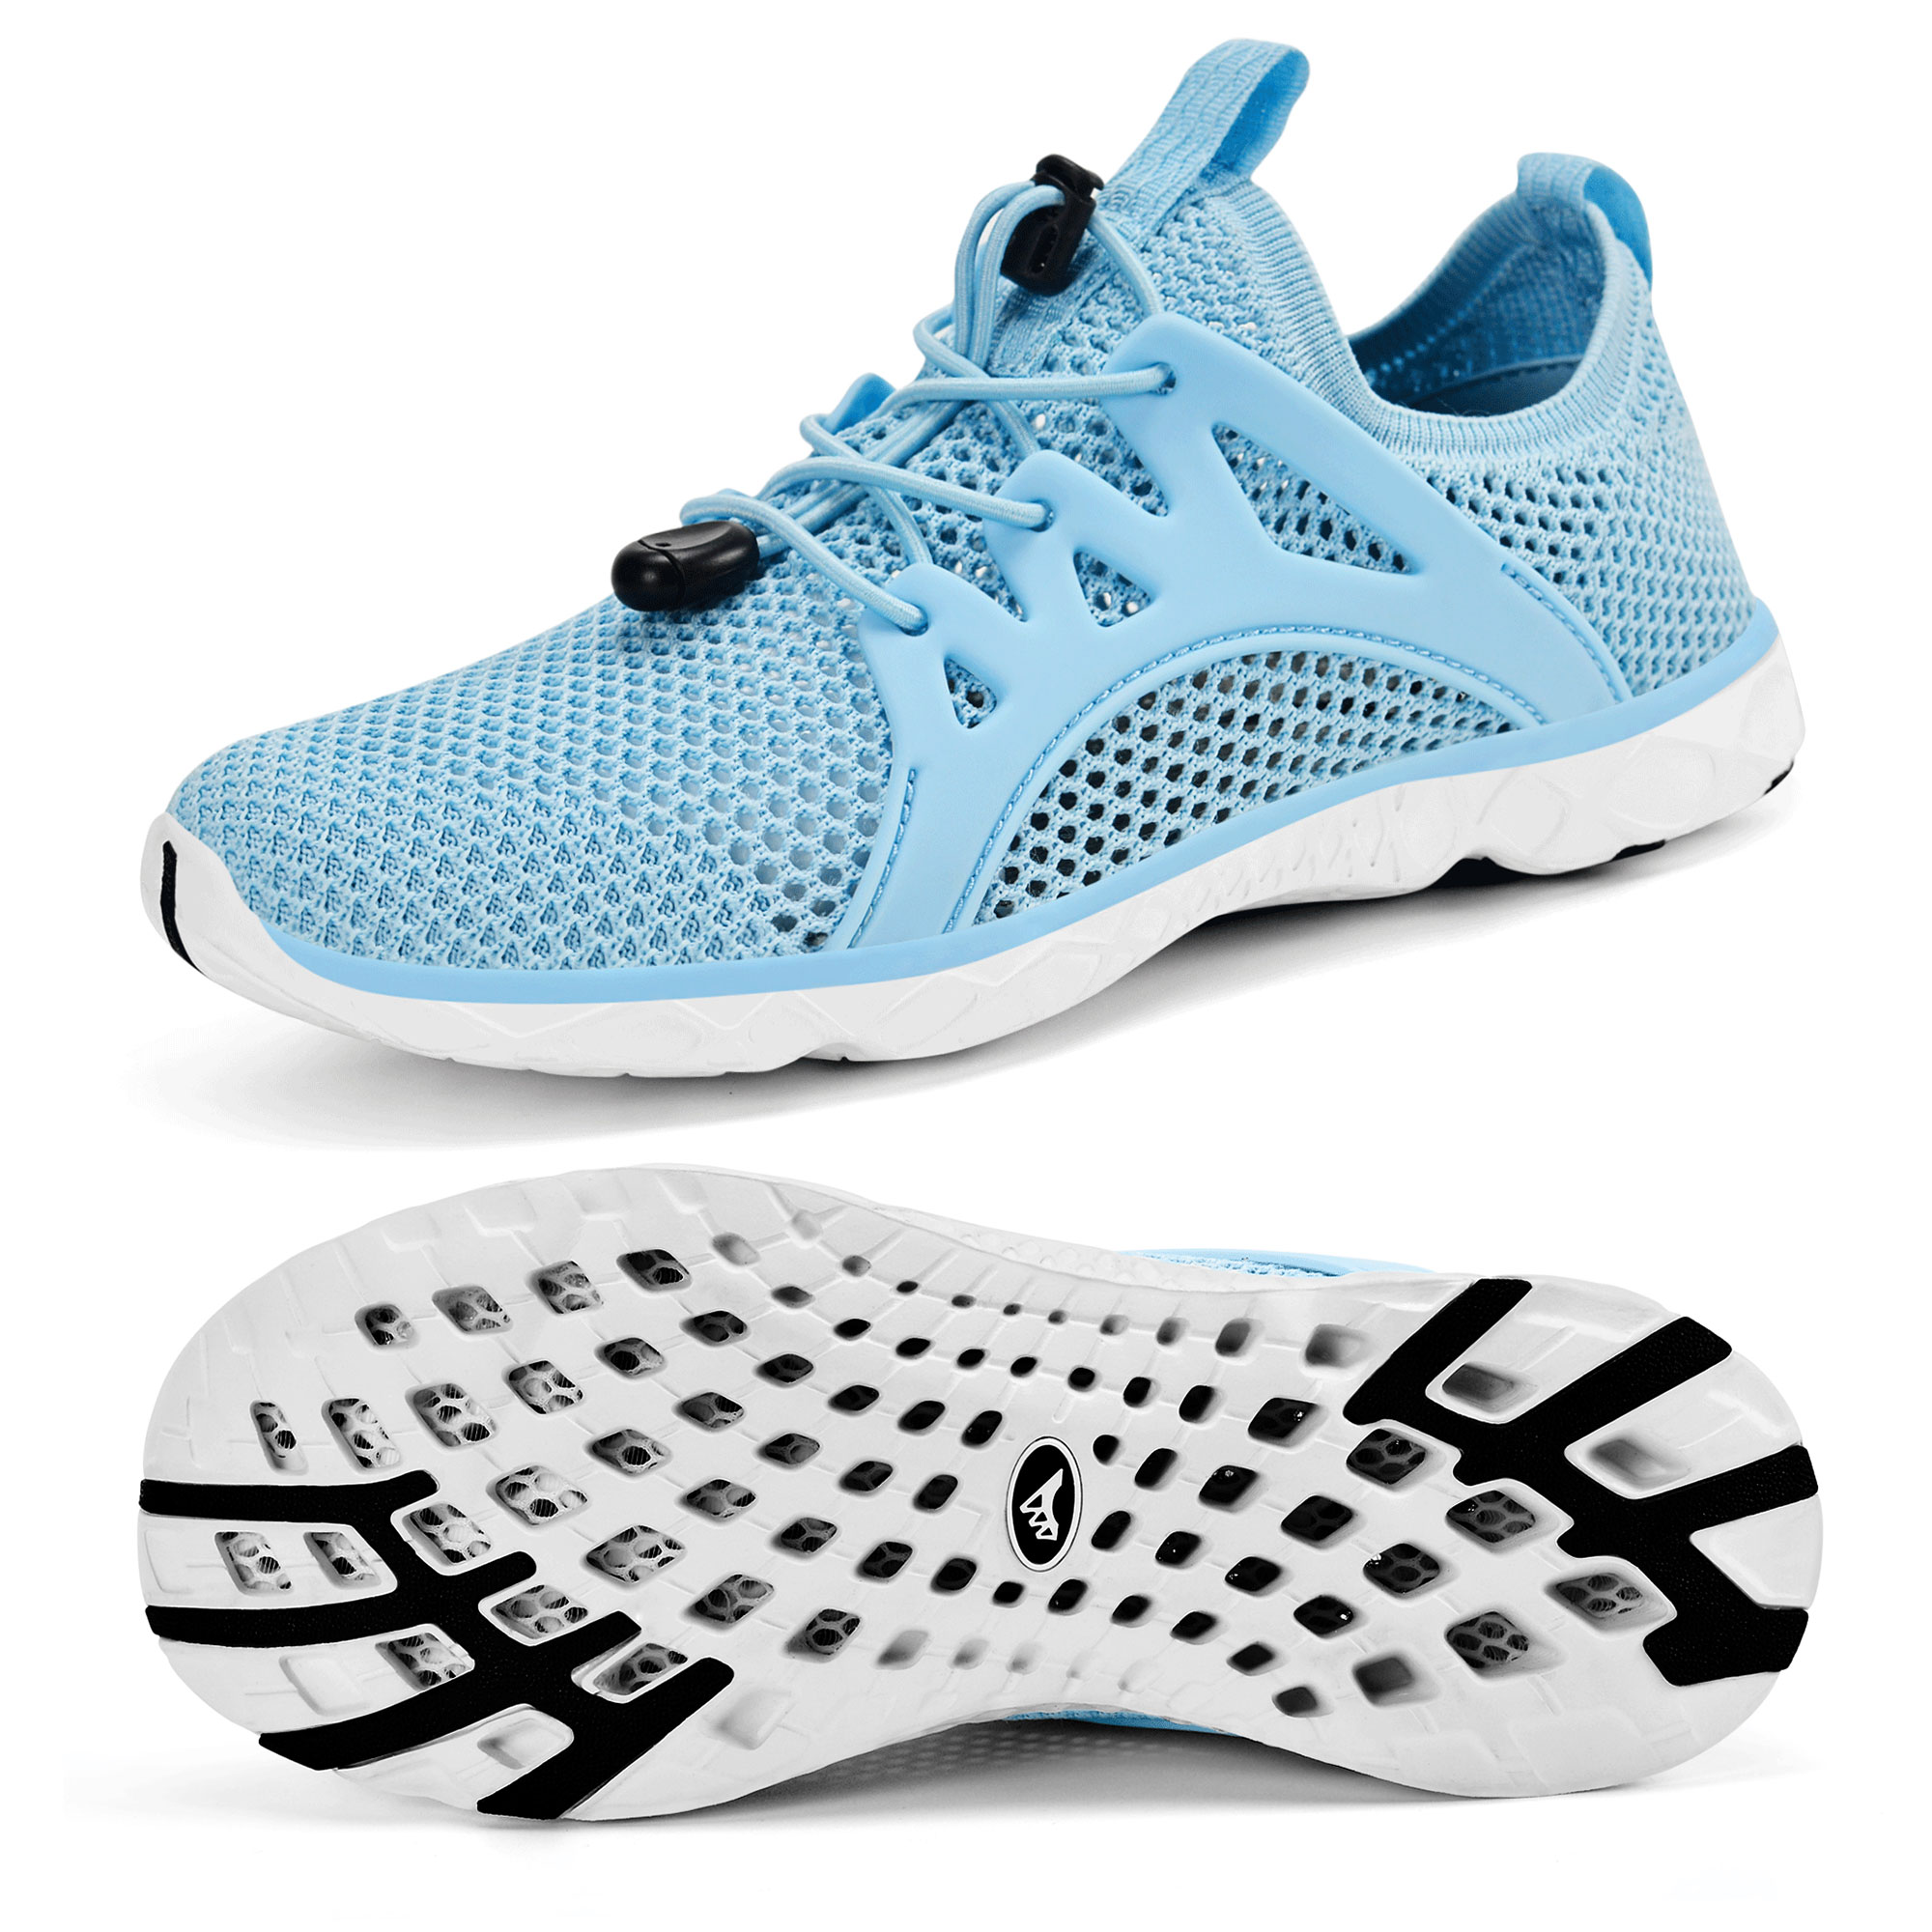 Summer Unisex Men/Women Breathable Mesh Sneakers Shoes Outdoor Sport Beach Quick Dry Running Shoes